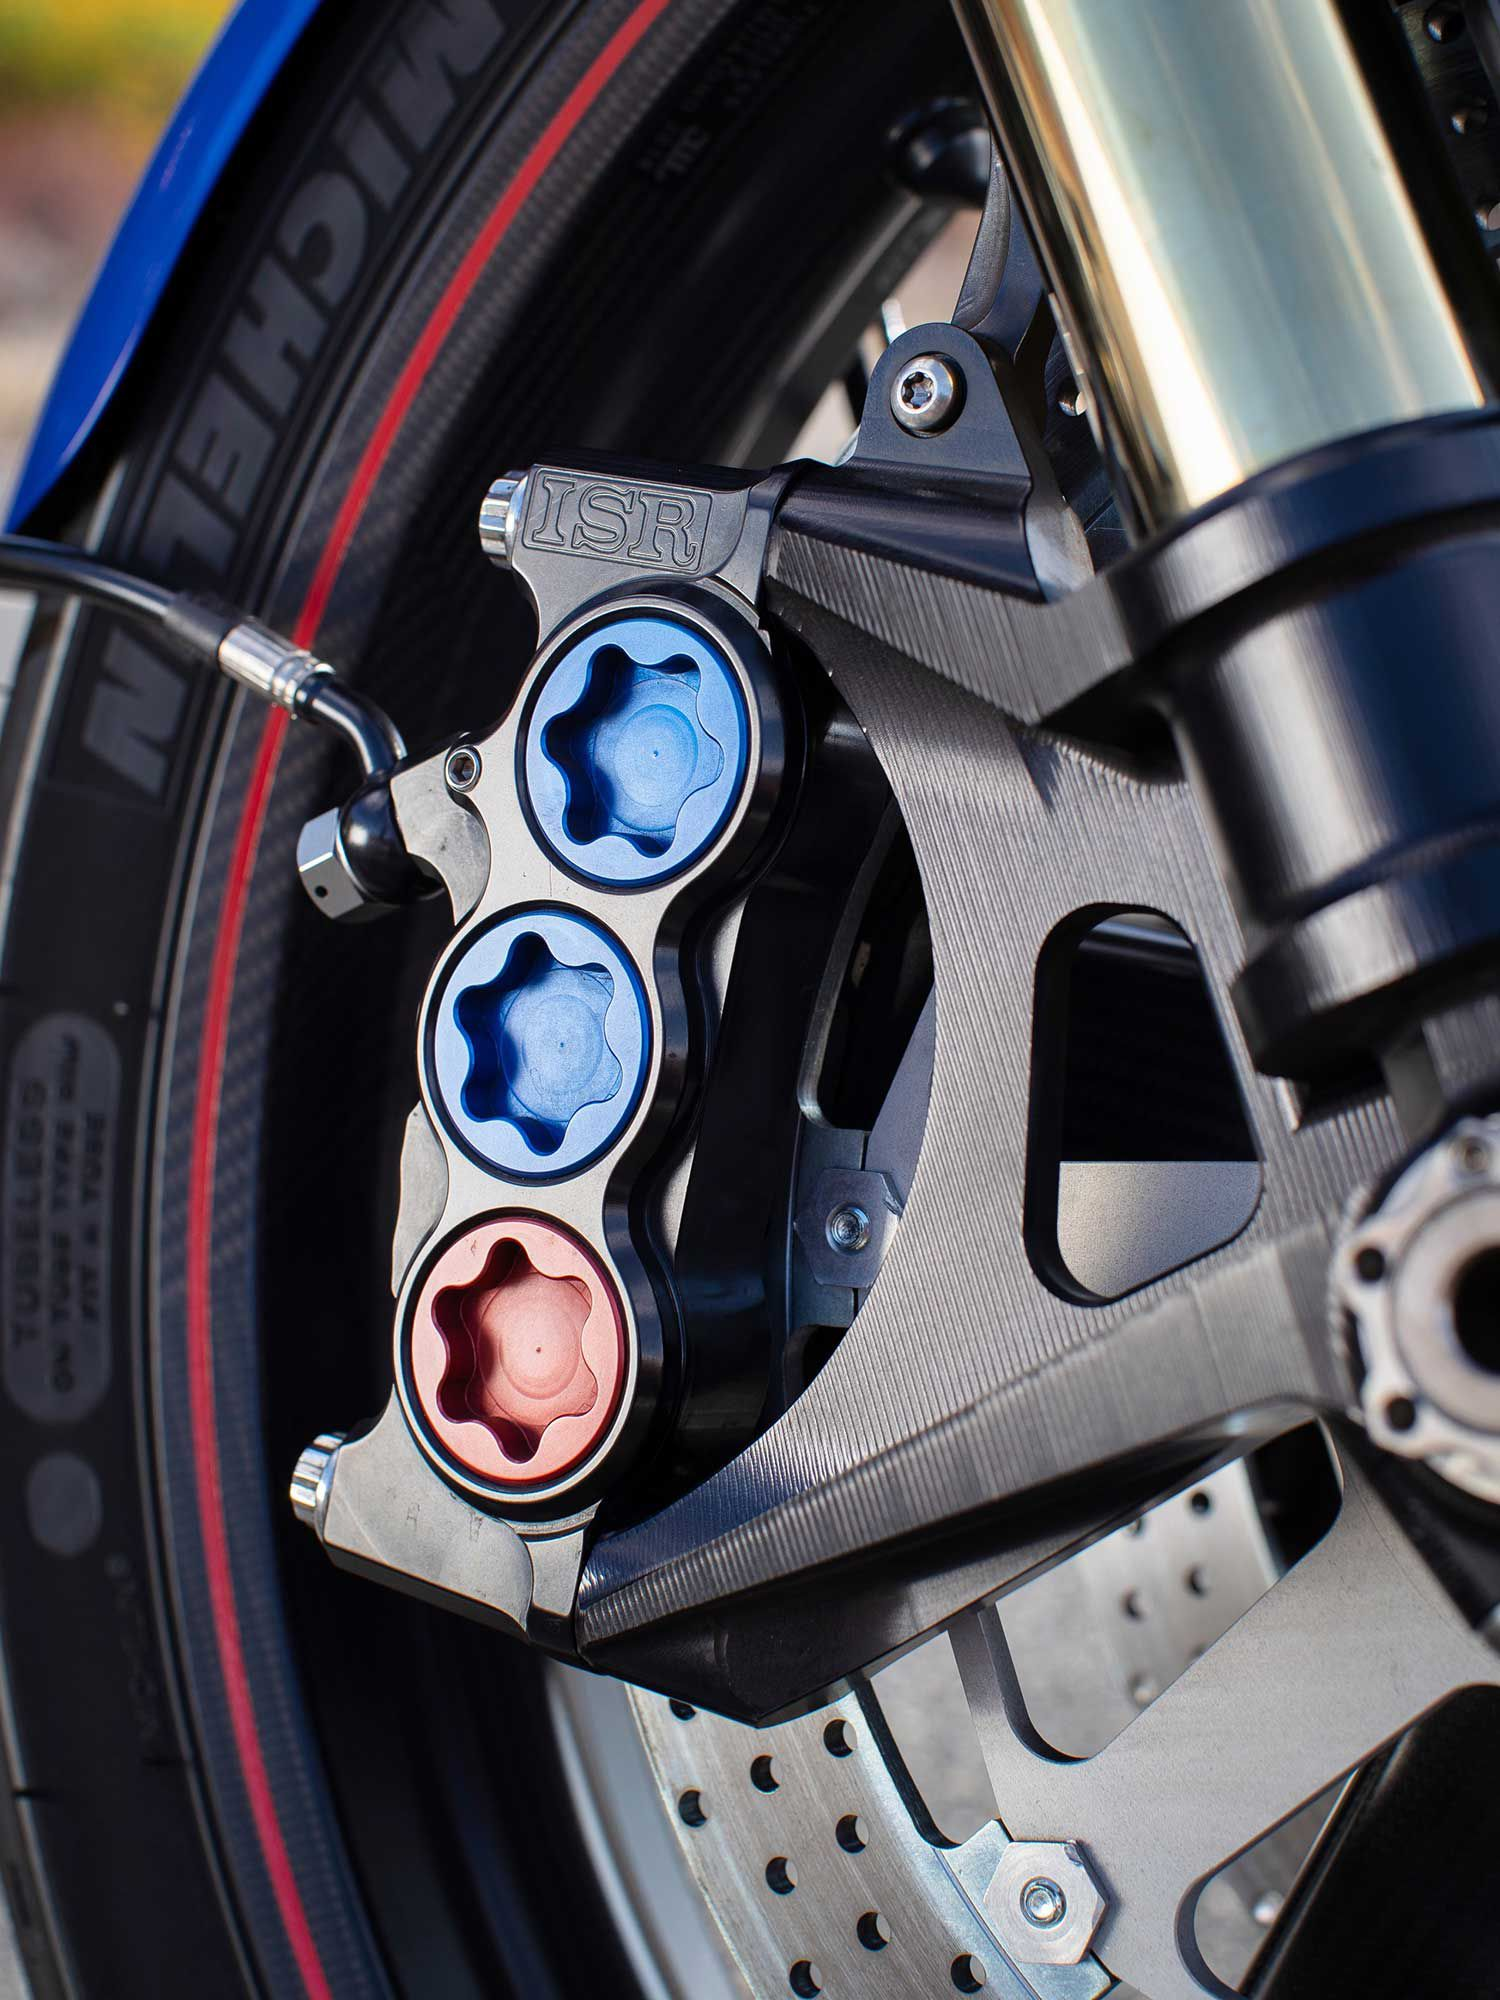 The ISR six-piston front brake calipers bring an increased piston diameter for more stopping power. The 48mm Öhlins fork is fully adjustable too.